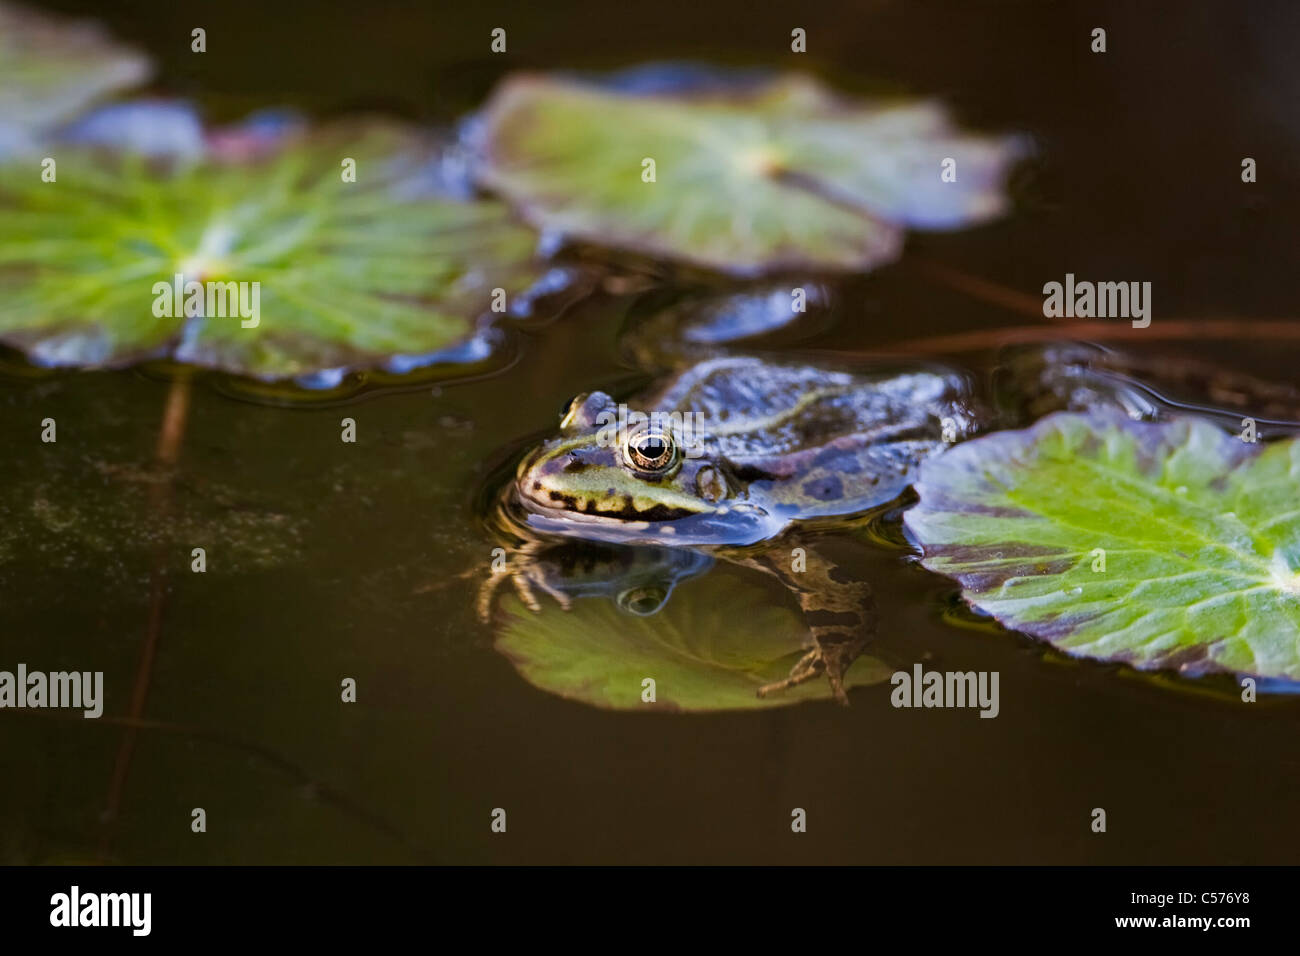 The Netherlands, Blokzijl, Pool Frog, Pelophylax lessonae. - Stock Image